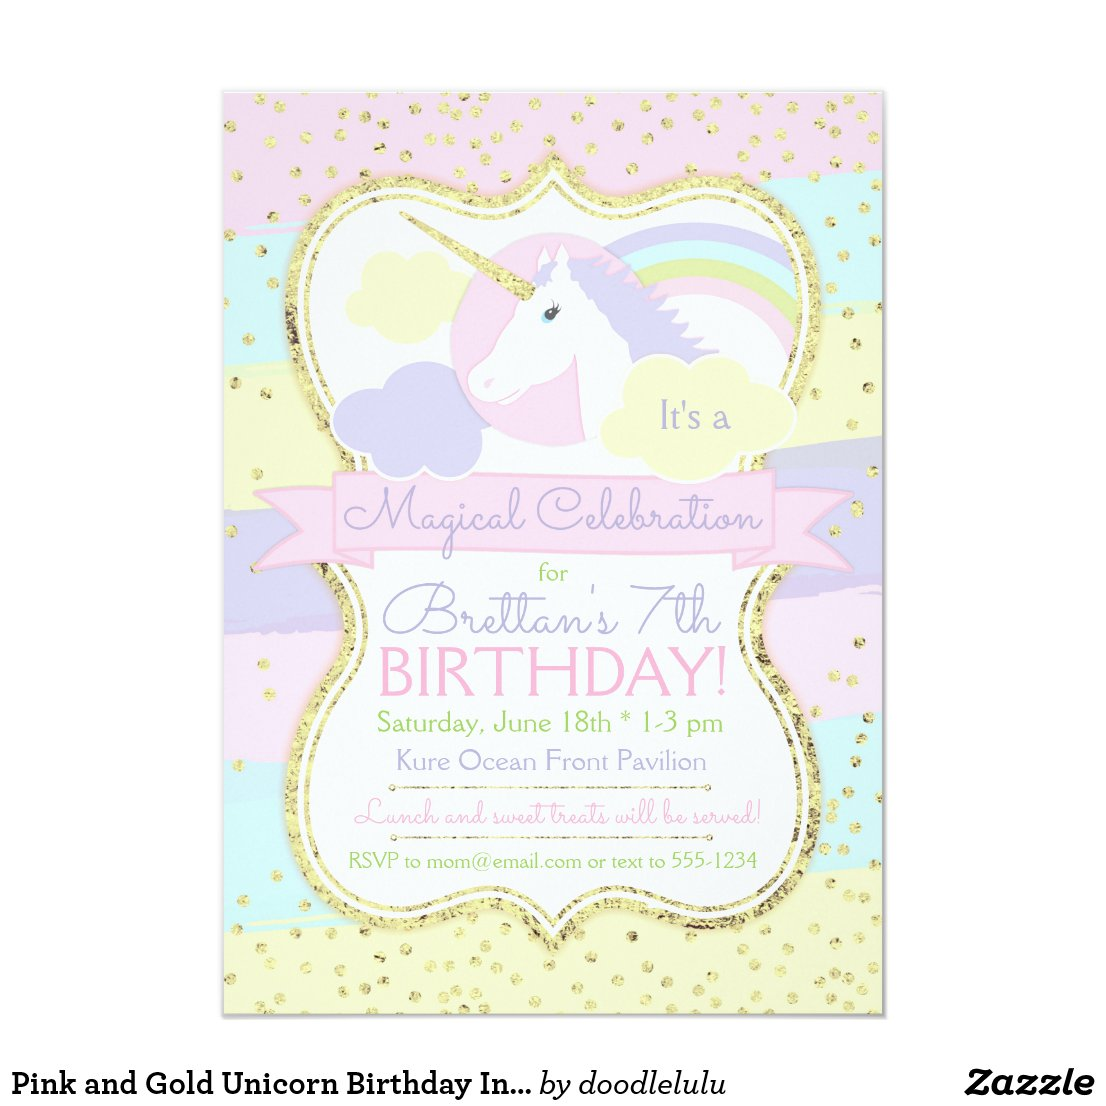 Pink and Gold Unicorn Birthday Invitation